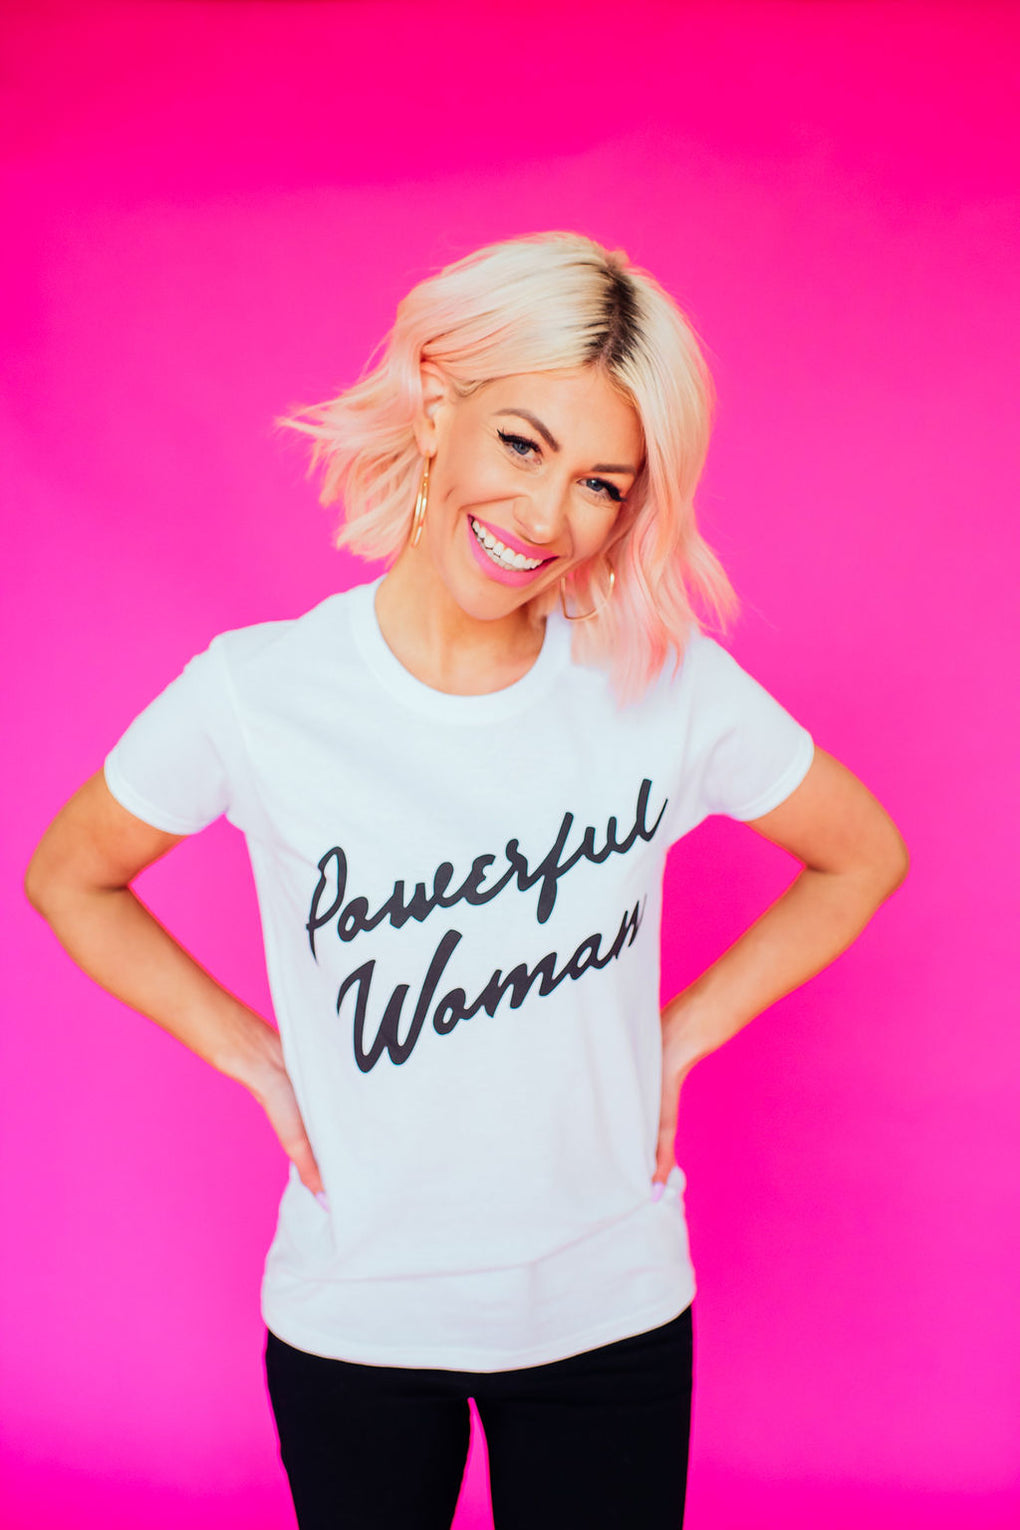 POWERFUL WOMAN EXCLUSIVE LALA TEE